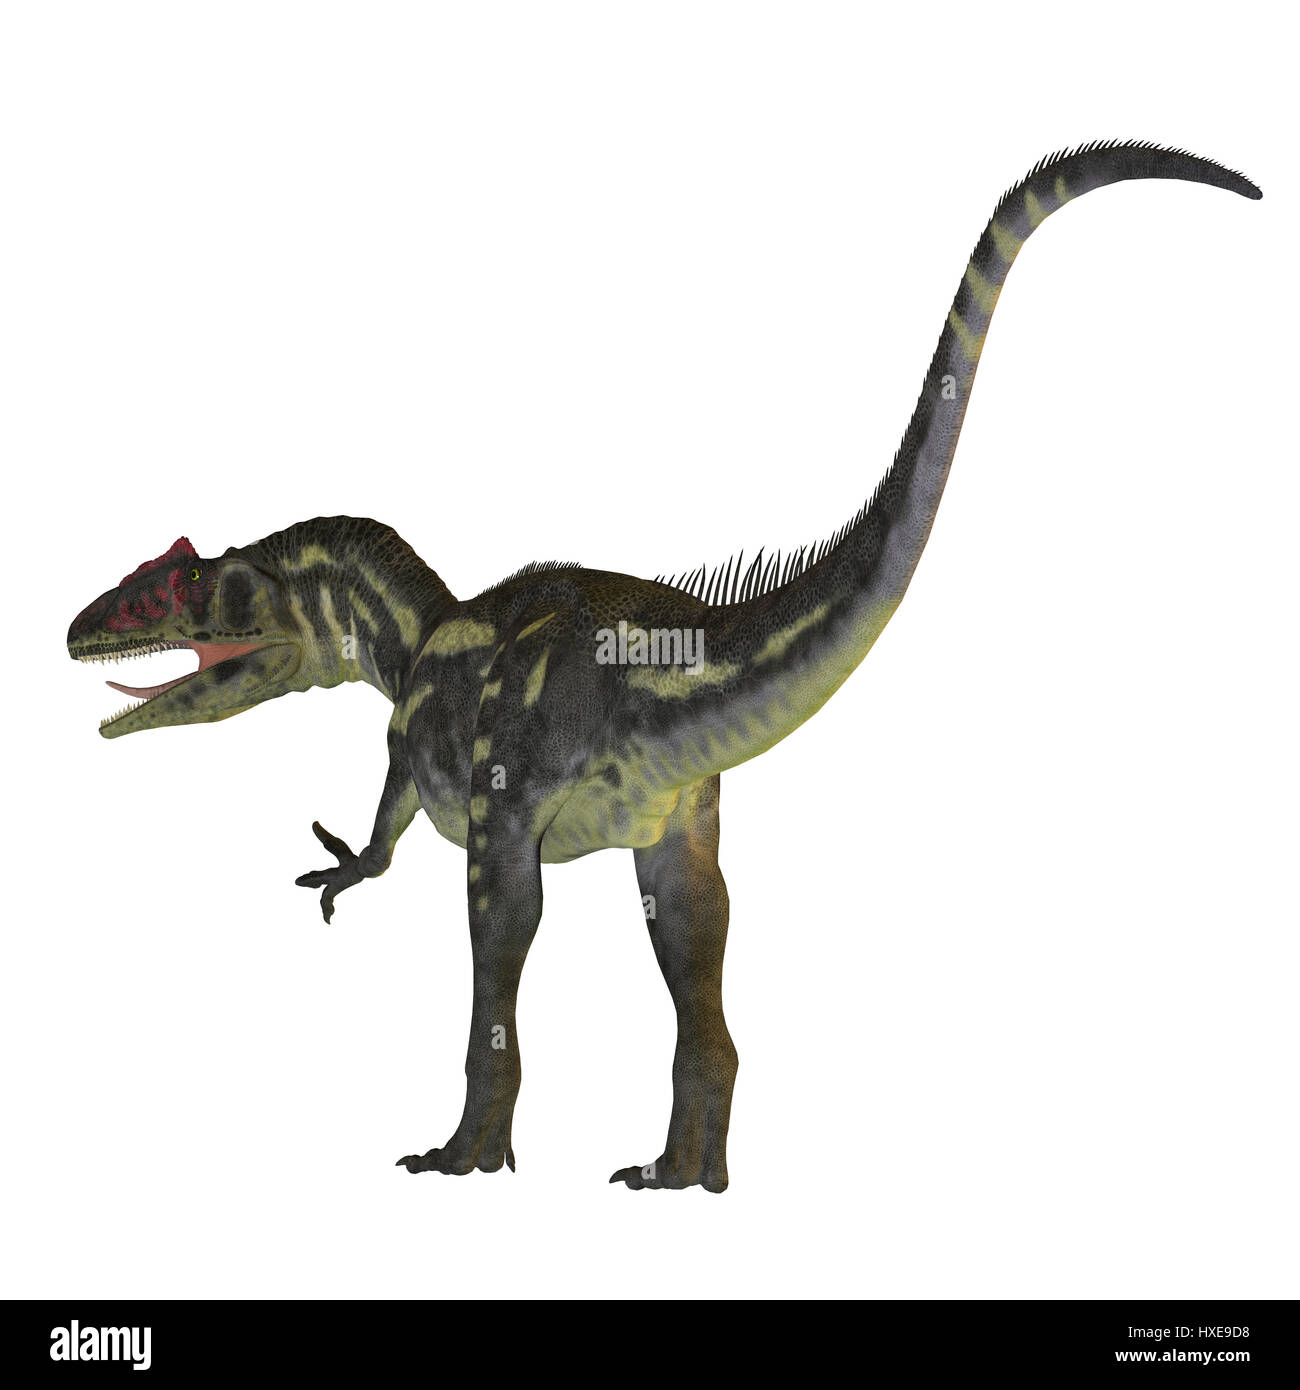 Allosaurus was a carnivorous theropod dinosaur that lived in North America in the Jurassic Period. - Stock Image